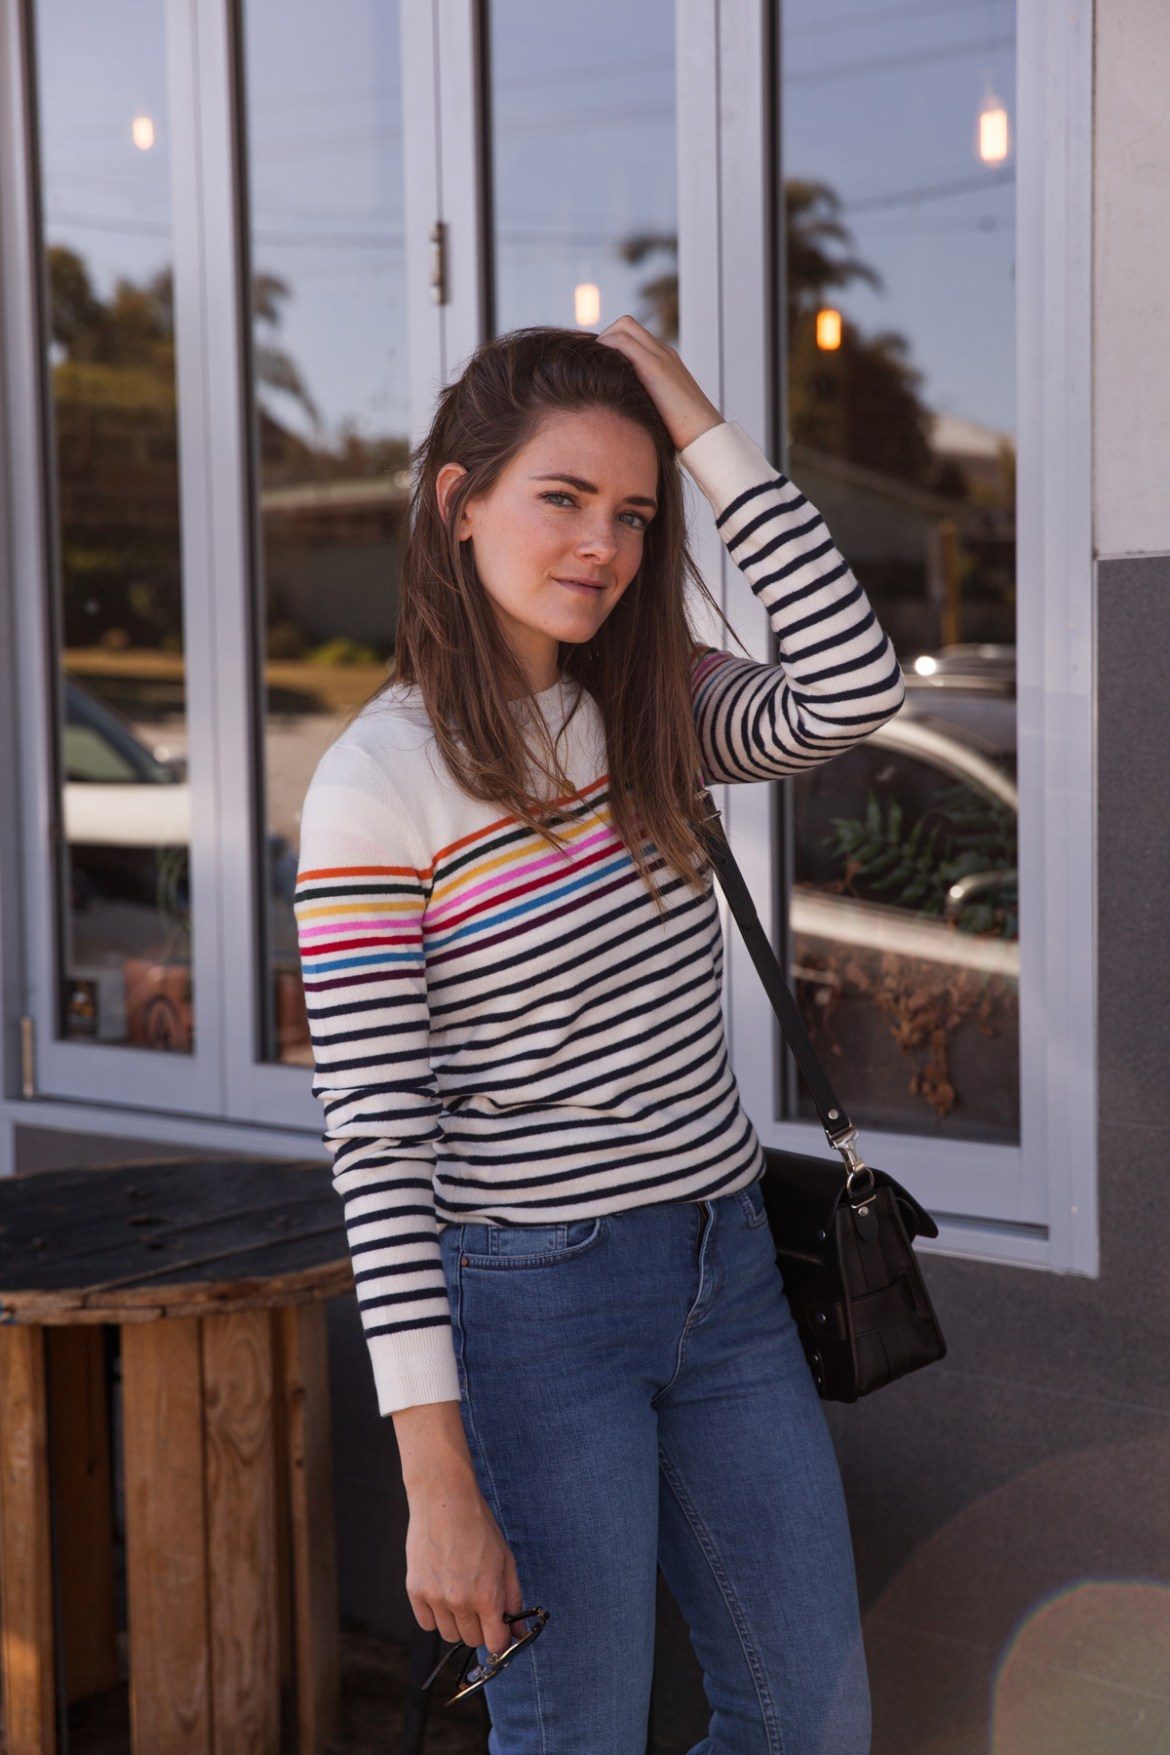 Boden summer 2018 new season jeans, cashmere stripe knit top worn by Inspiring Wit blogger Jenelle Witty